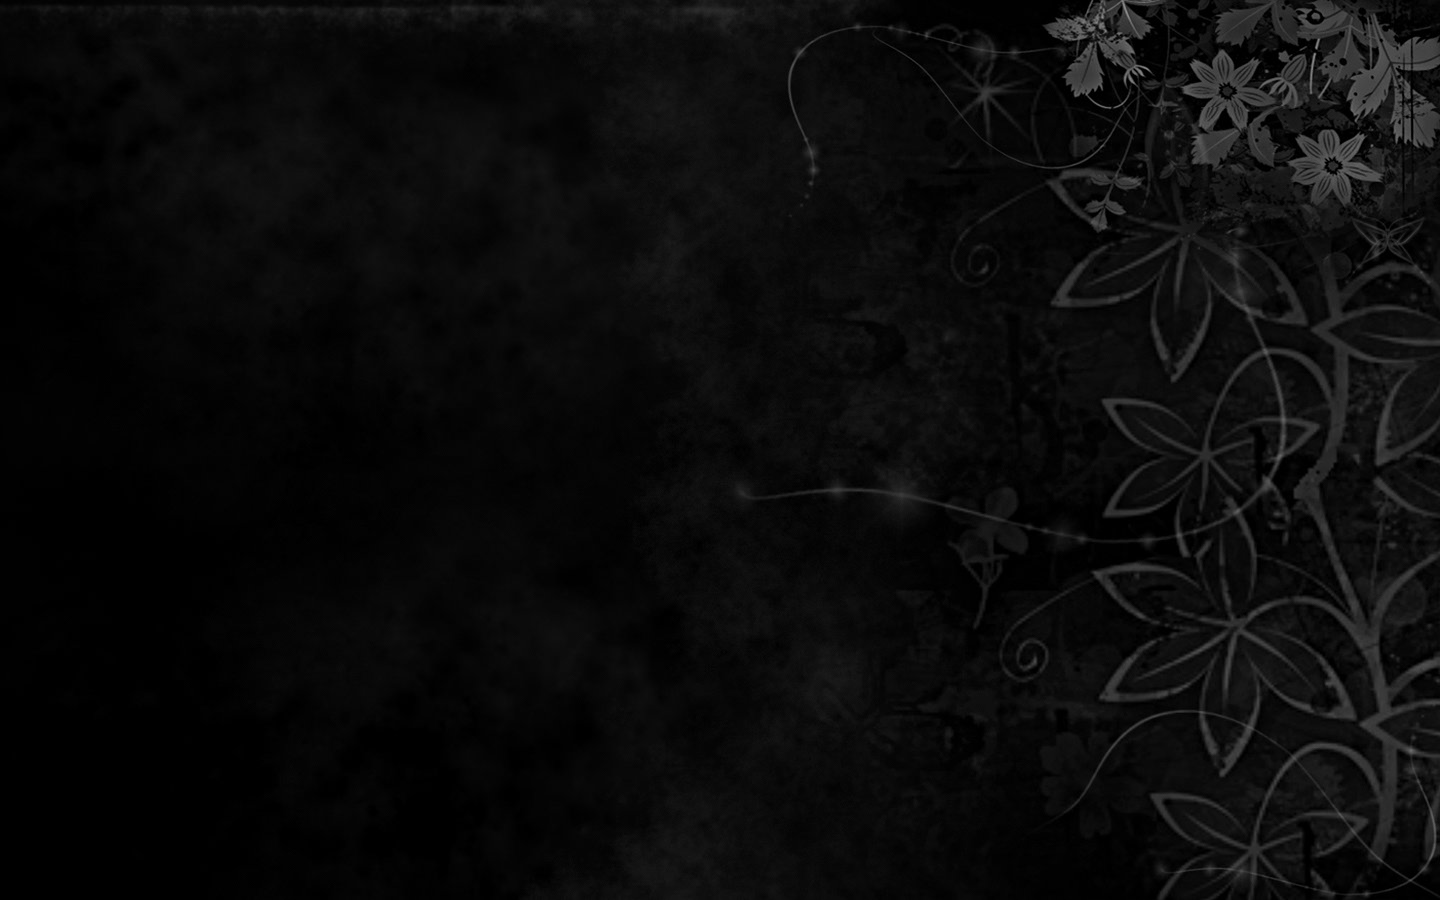 Black White Wallpaper Backgrounds Desktop Wallpapers 1440x900